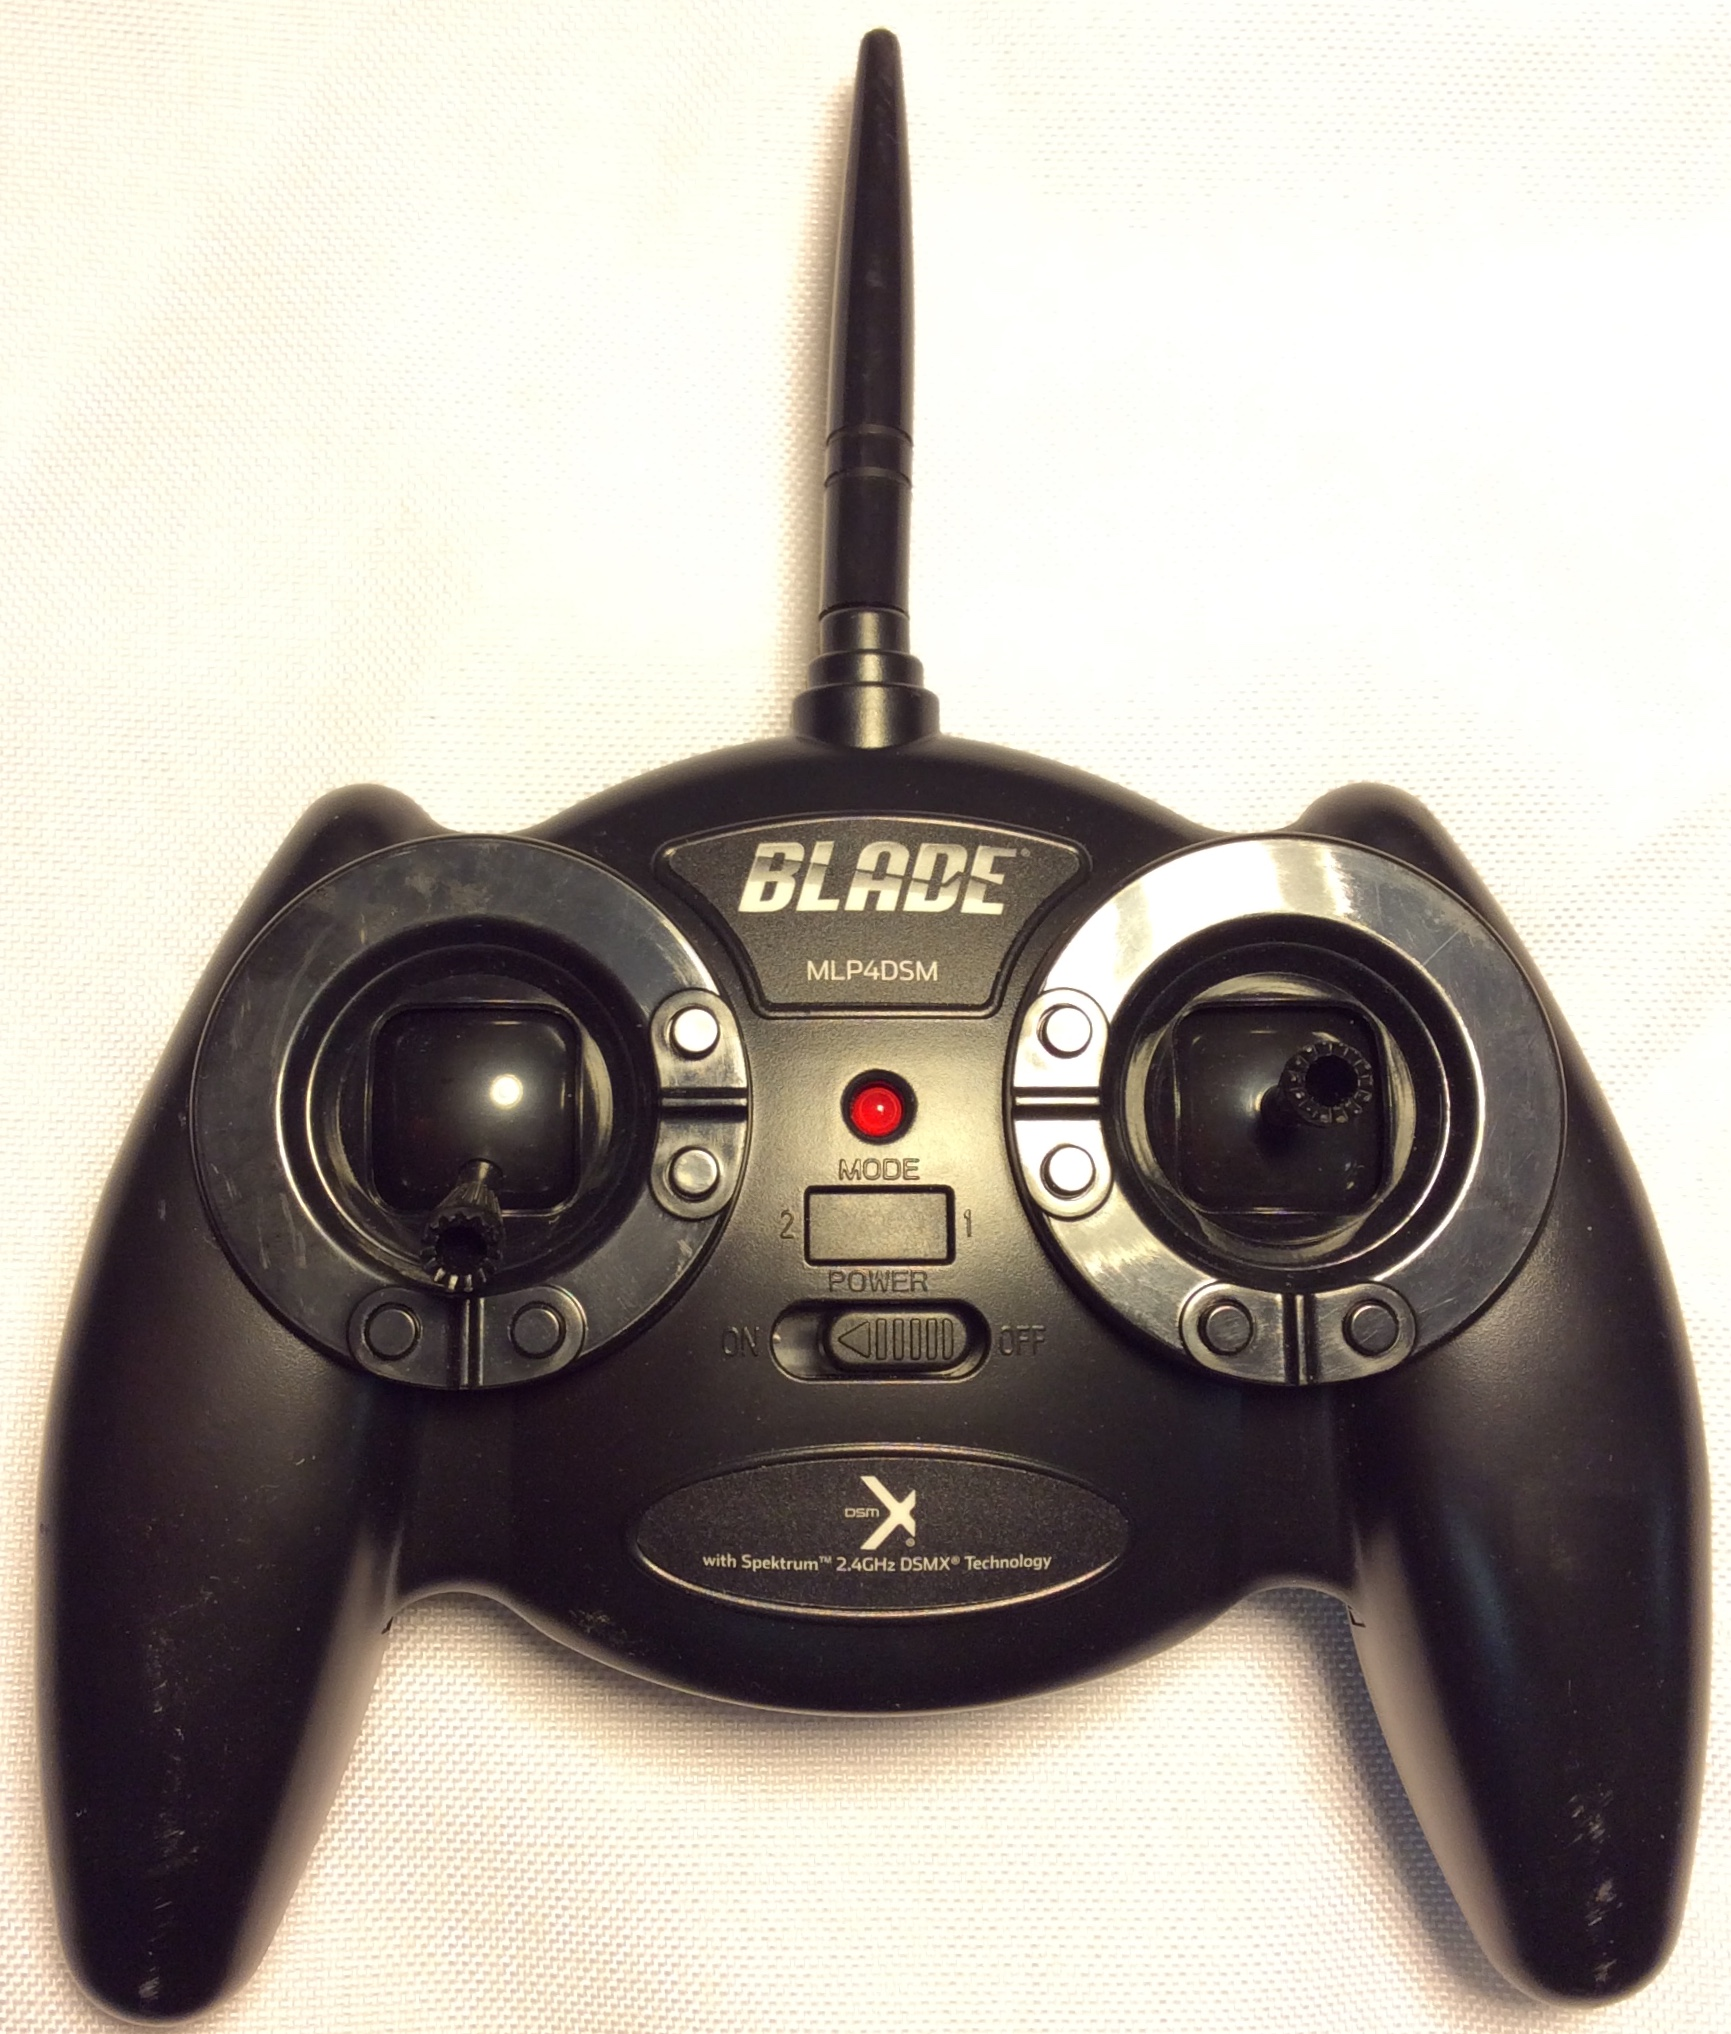 Blade MLP4DSM Remote controllers